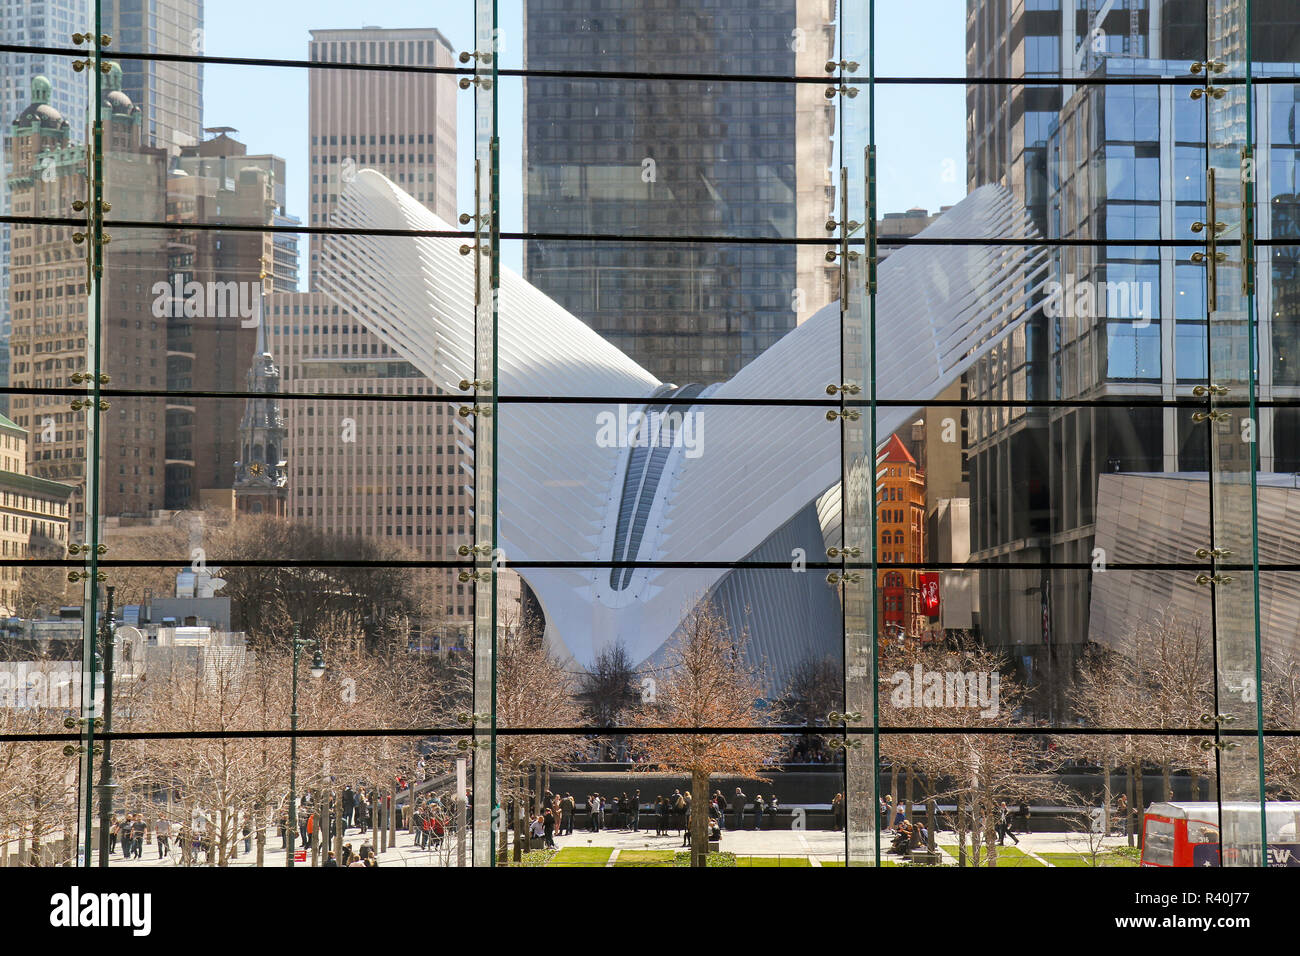 The National September 11 Memorial Museum (white structure) seen through windows at Brookfield Place, New York, USA - Stock Image